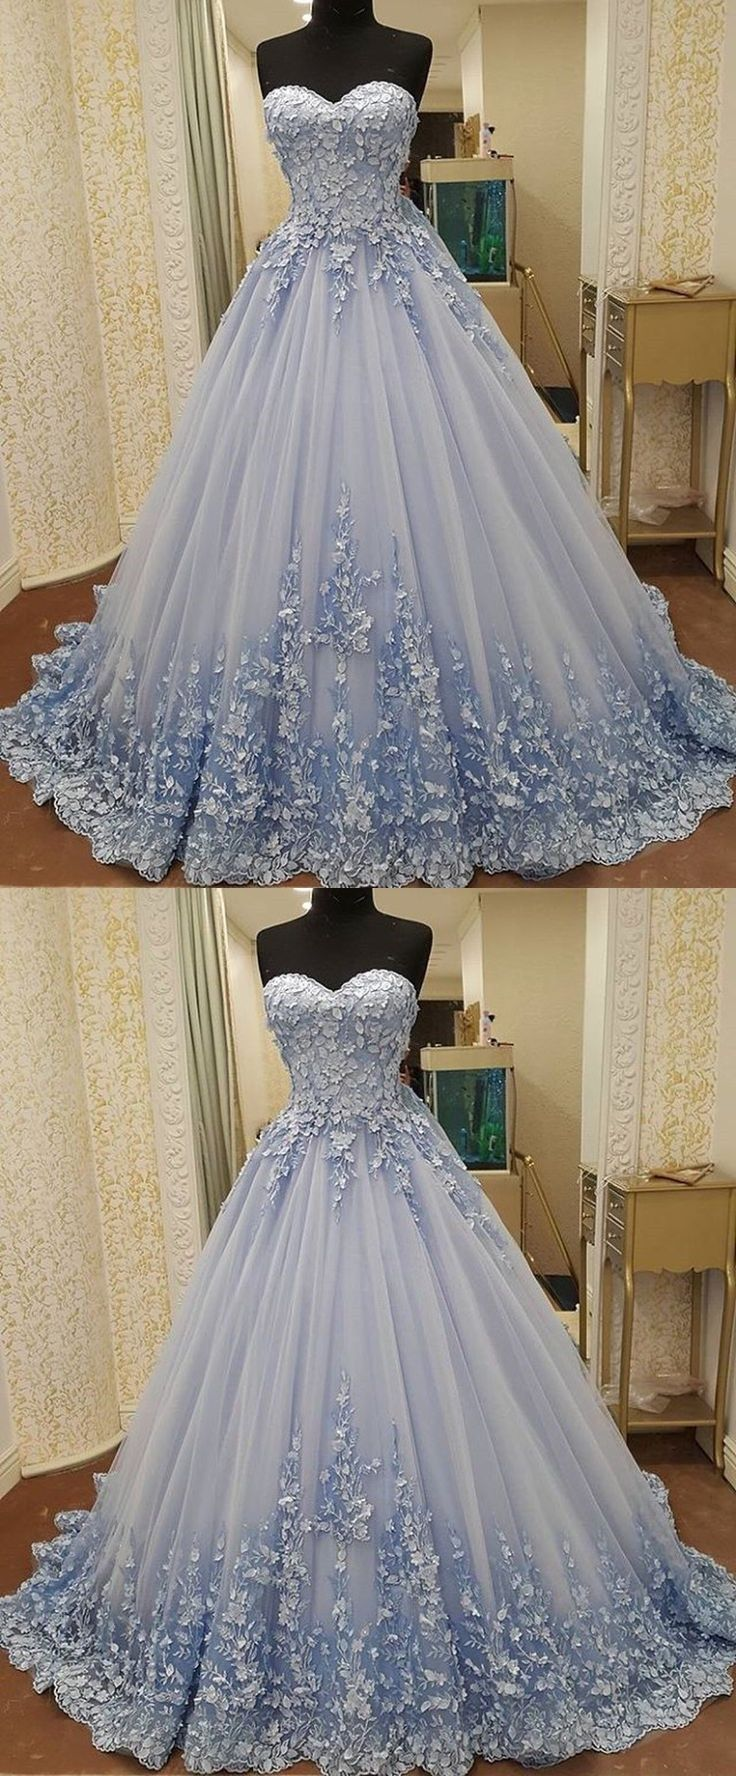 Elegant Sweetheart Ball Gowns For Sweet 16 Blue Quinceanera Dresses With Appliques Elegant Prom Party Gow Prom Dresses Lace Ball Gowns Prom Prom Dresses Long [ 1776 x 736 Pixel ]